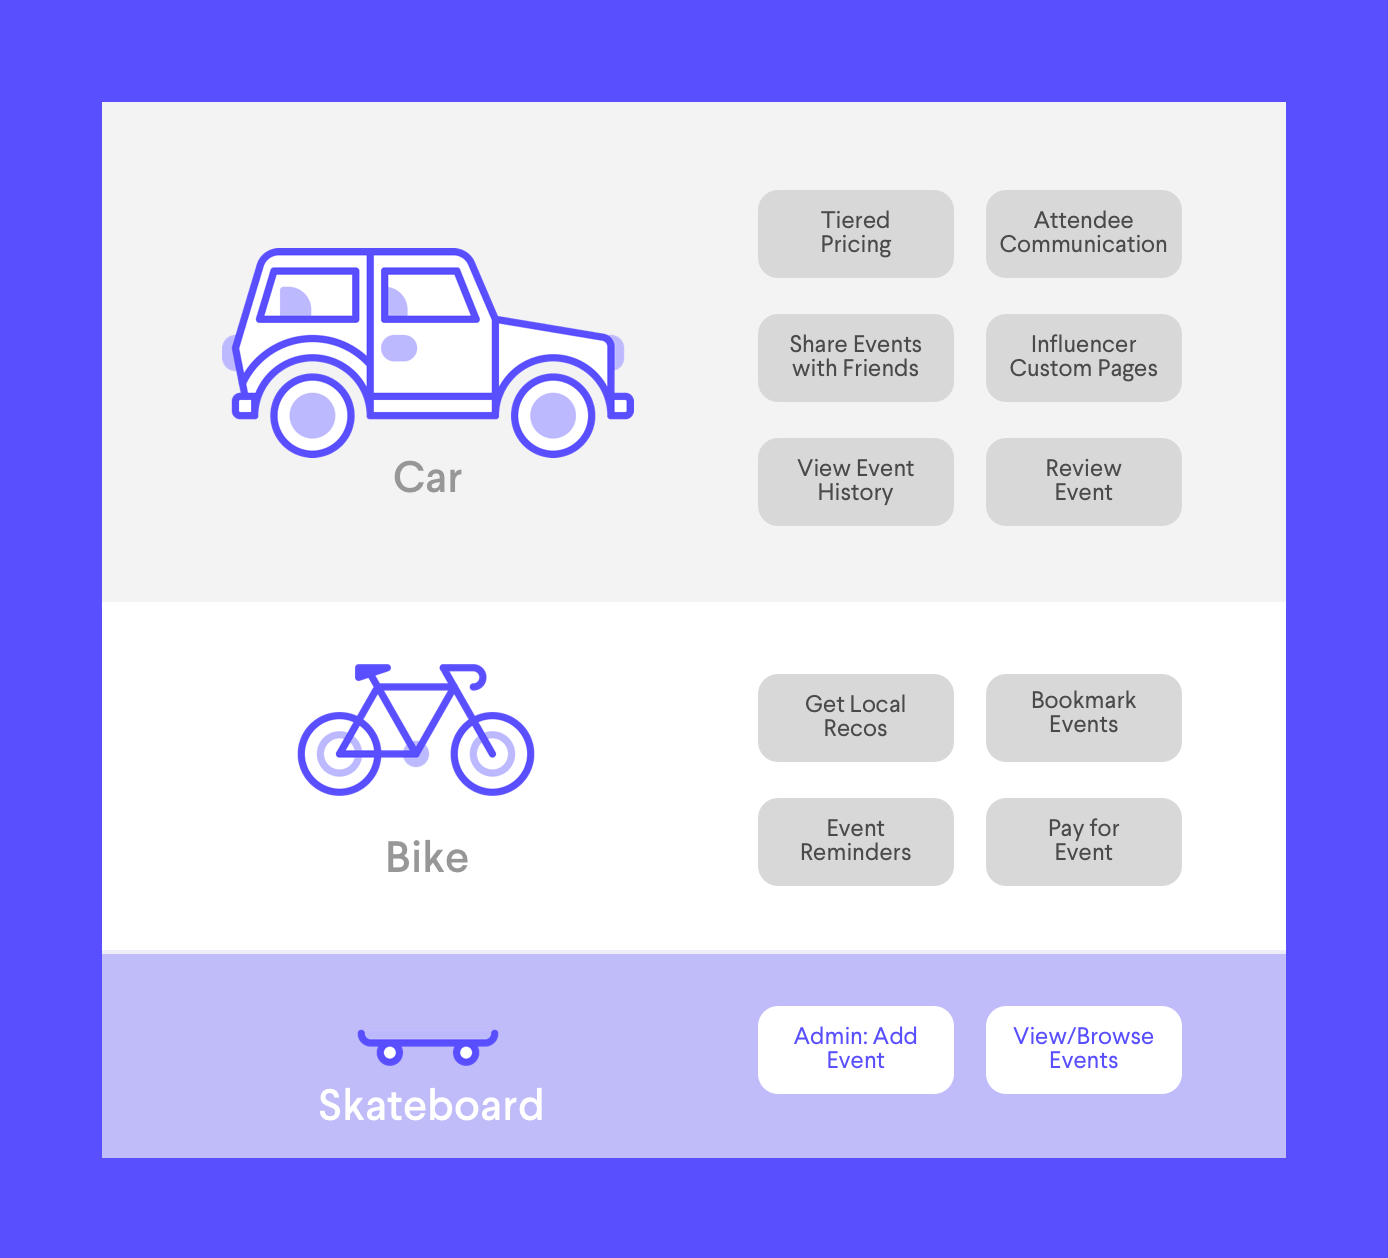 A validated feature set for an event app based on user research